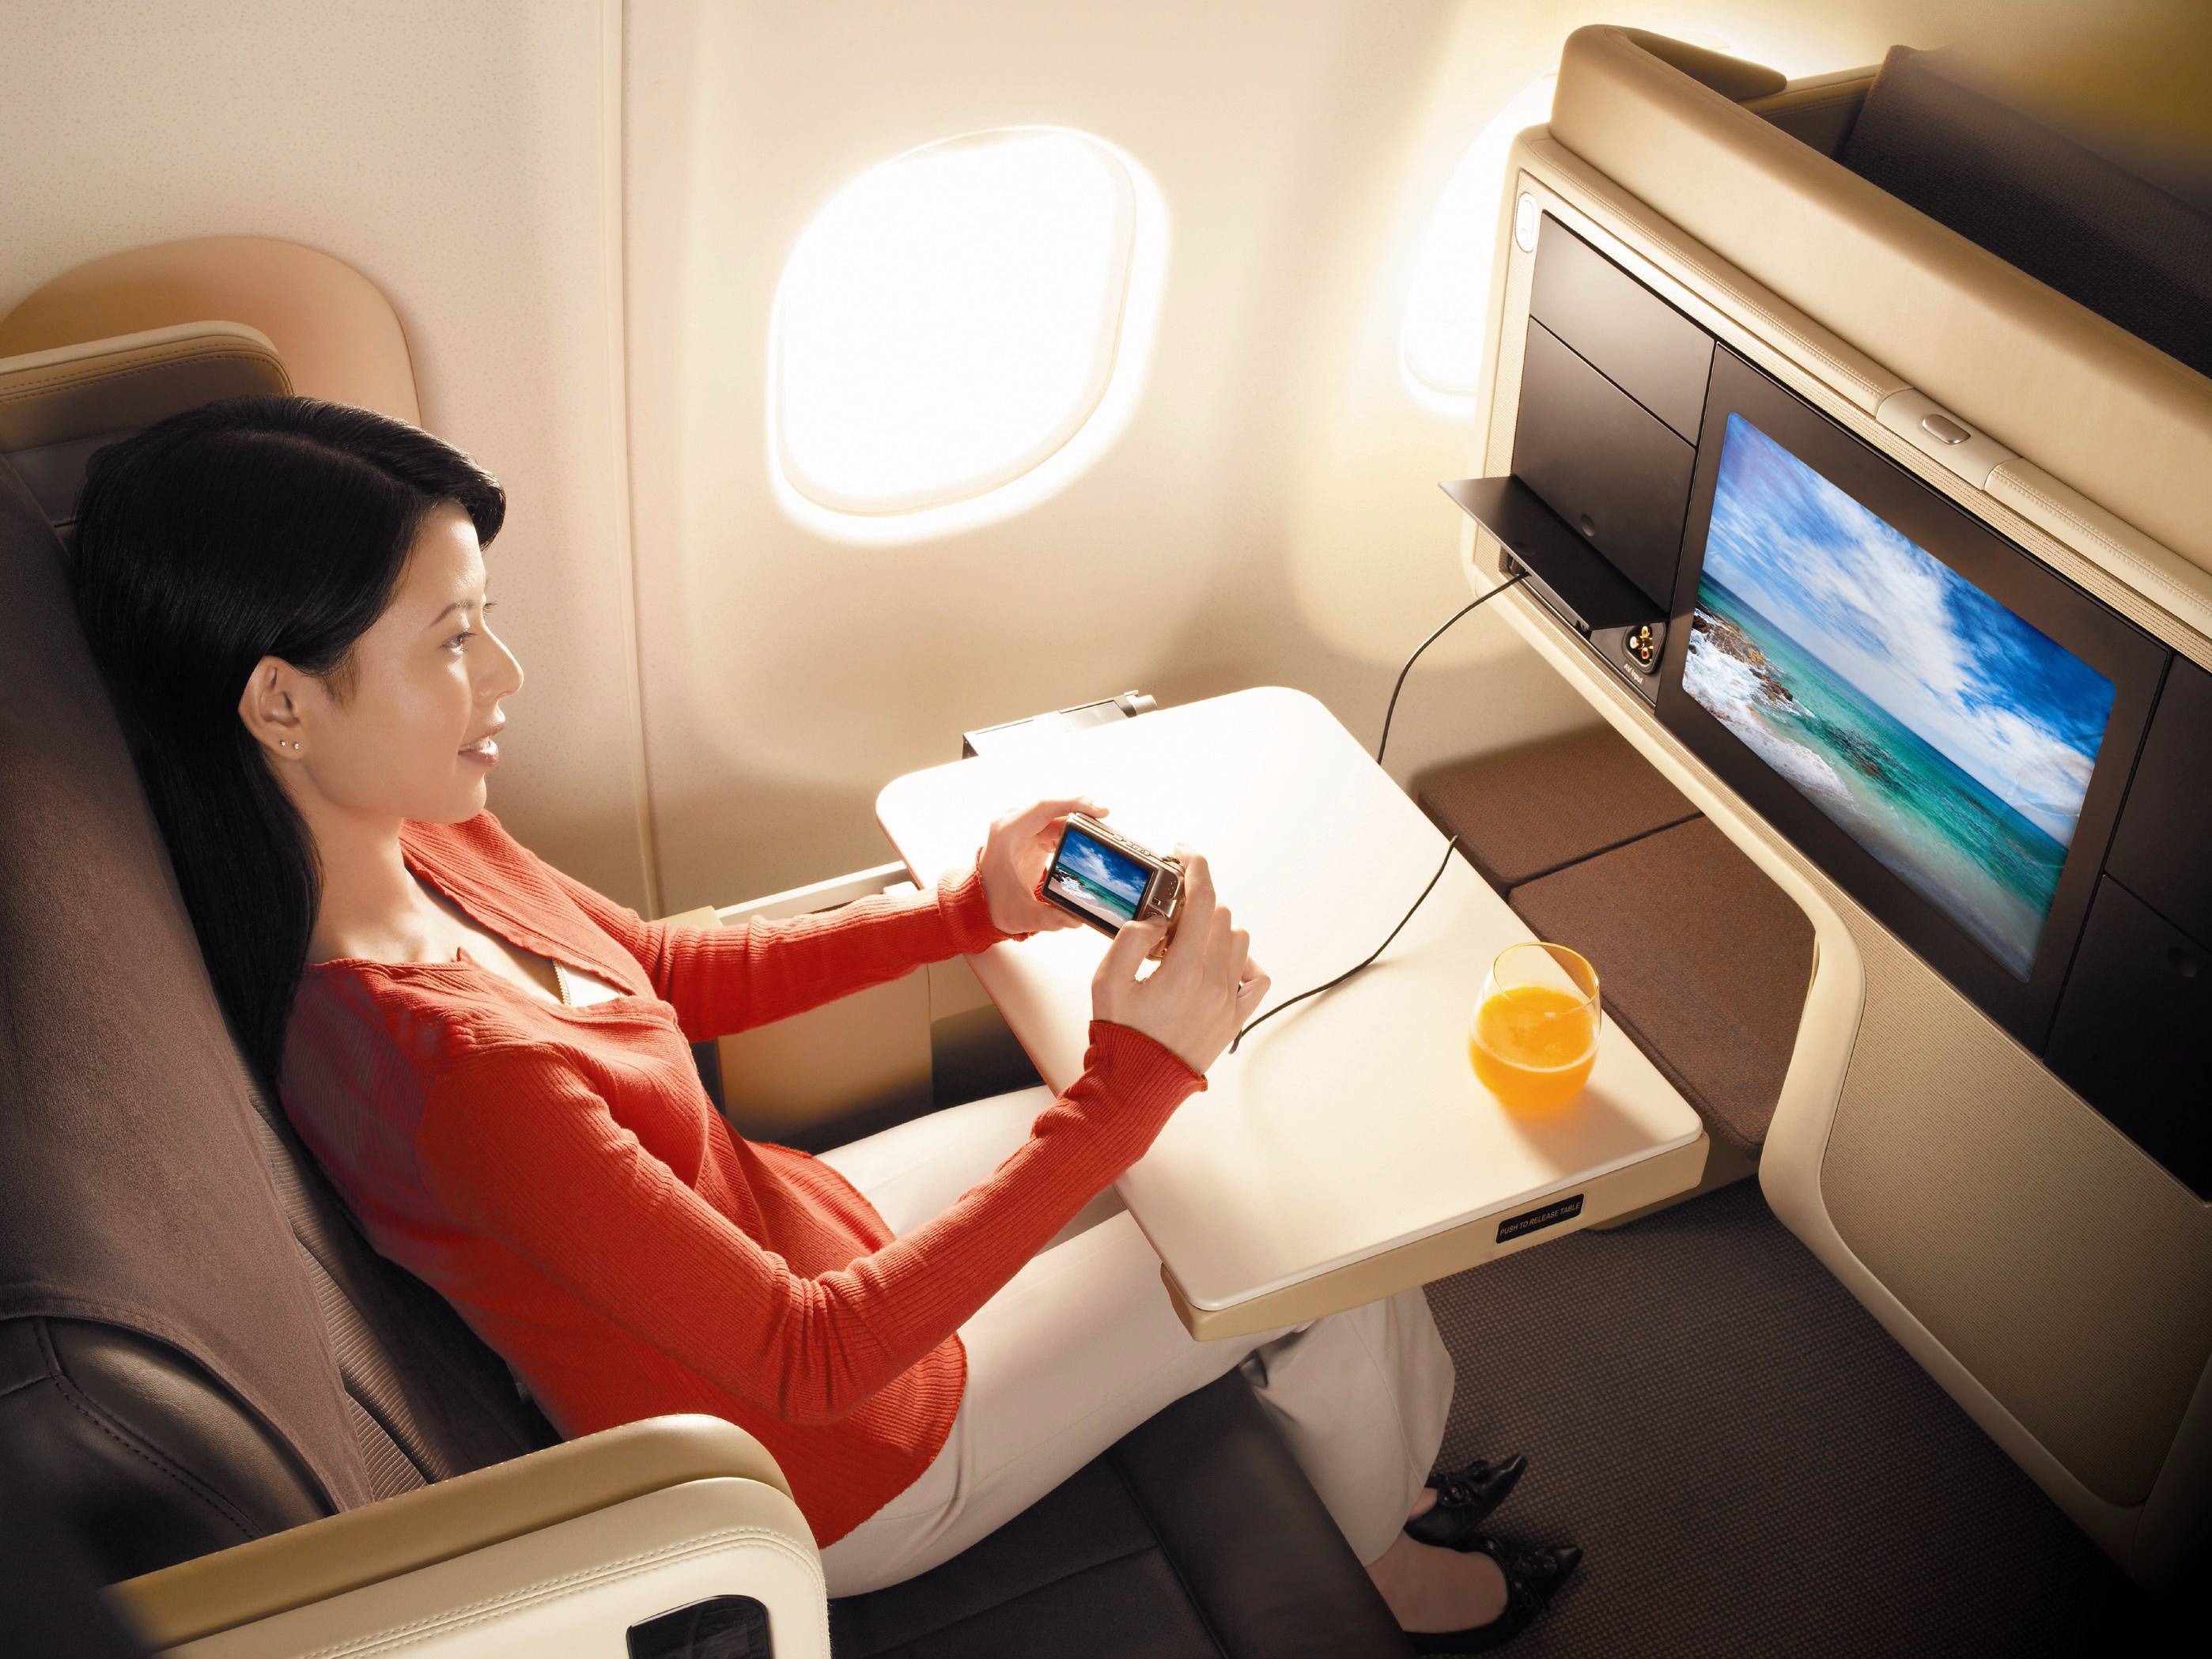 Business Class Vs Economy. SkyLux - Discounted Business and First Class Flights